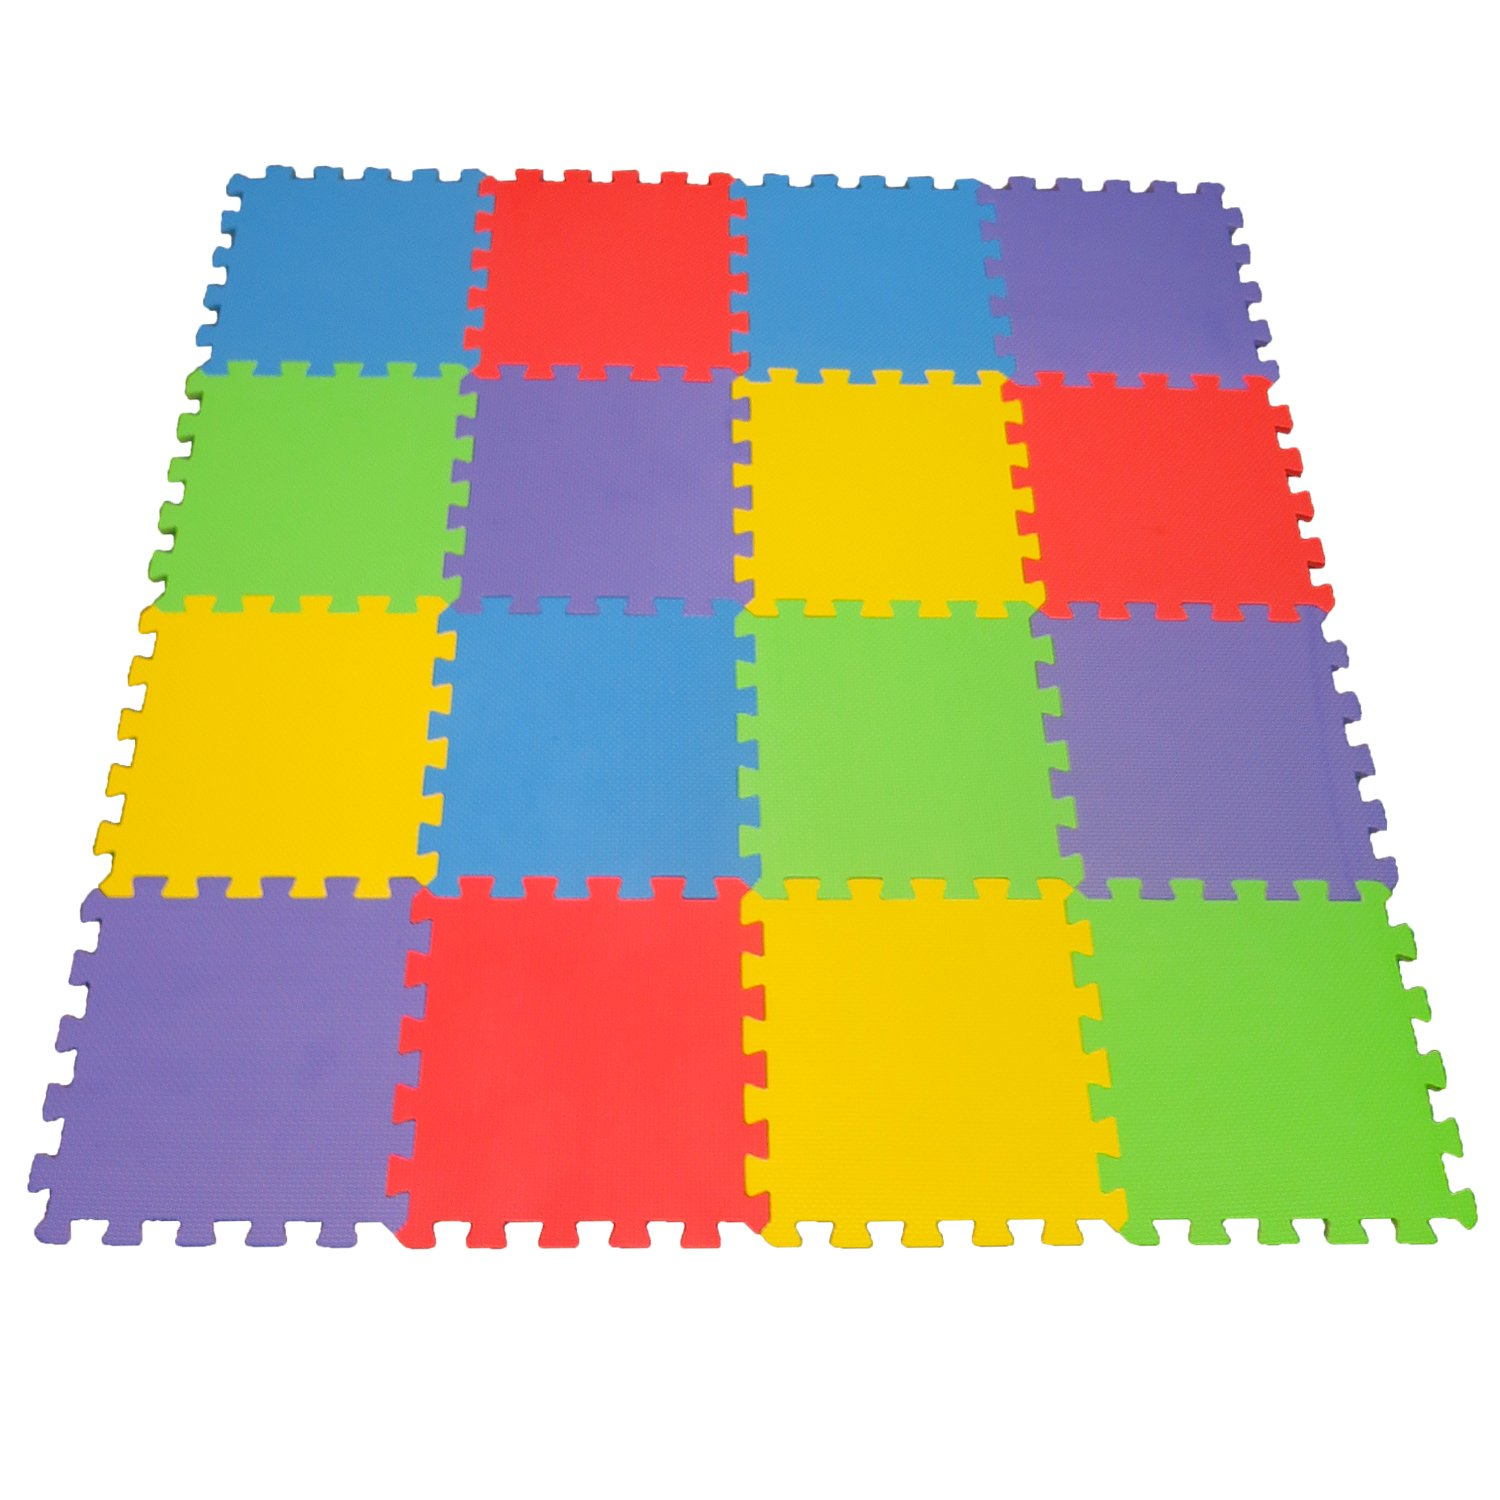 16 X-Large Eva Foam Soft Tile Mat Safe Playmat ideal Gift Toy Child & Baby Room, Interlocking Puzzle Multi Color flooring Exercise Yoga Pilates Toddler infant Game Play Area Yard Superyard Carpet